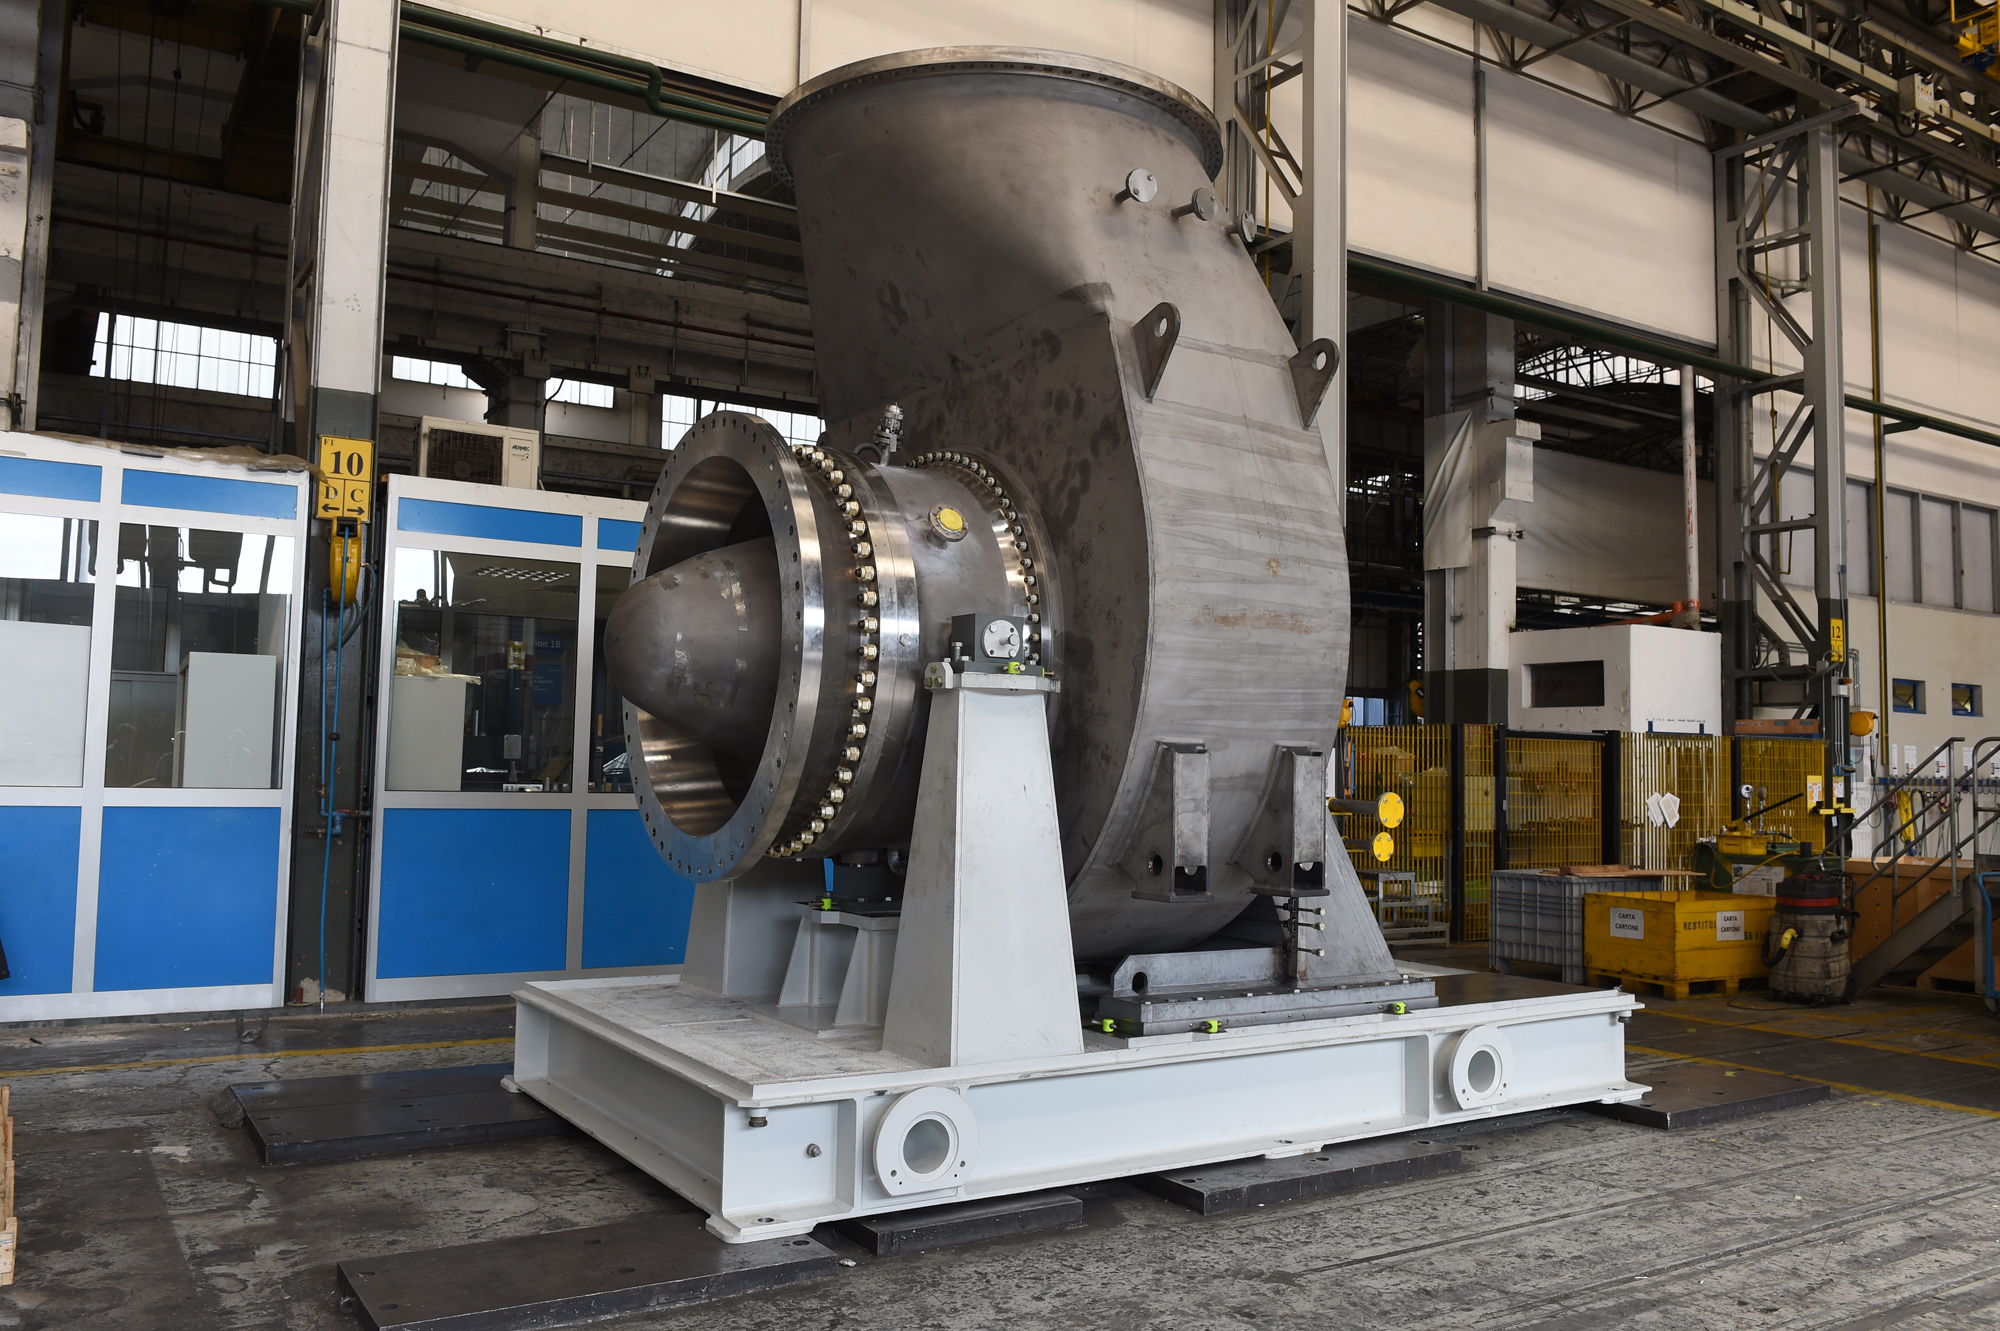 Hot Gas Expanders Power Cost Recovery